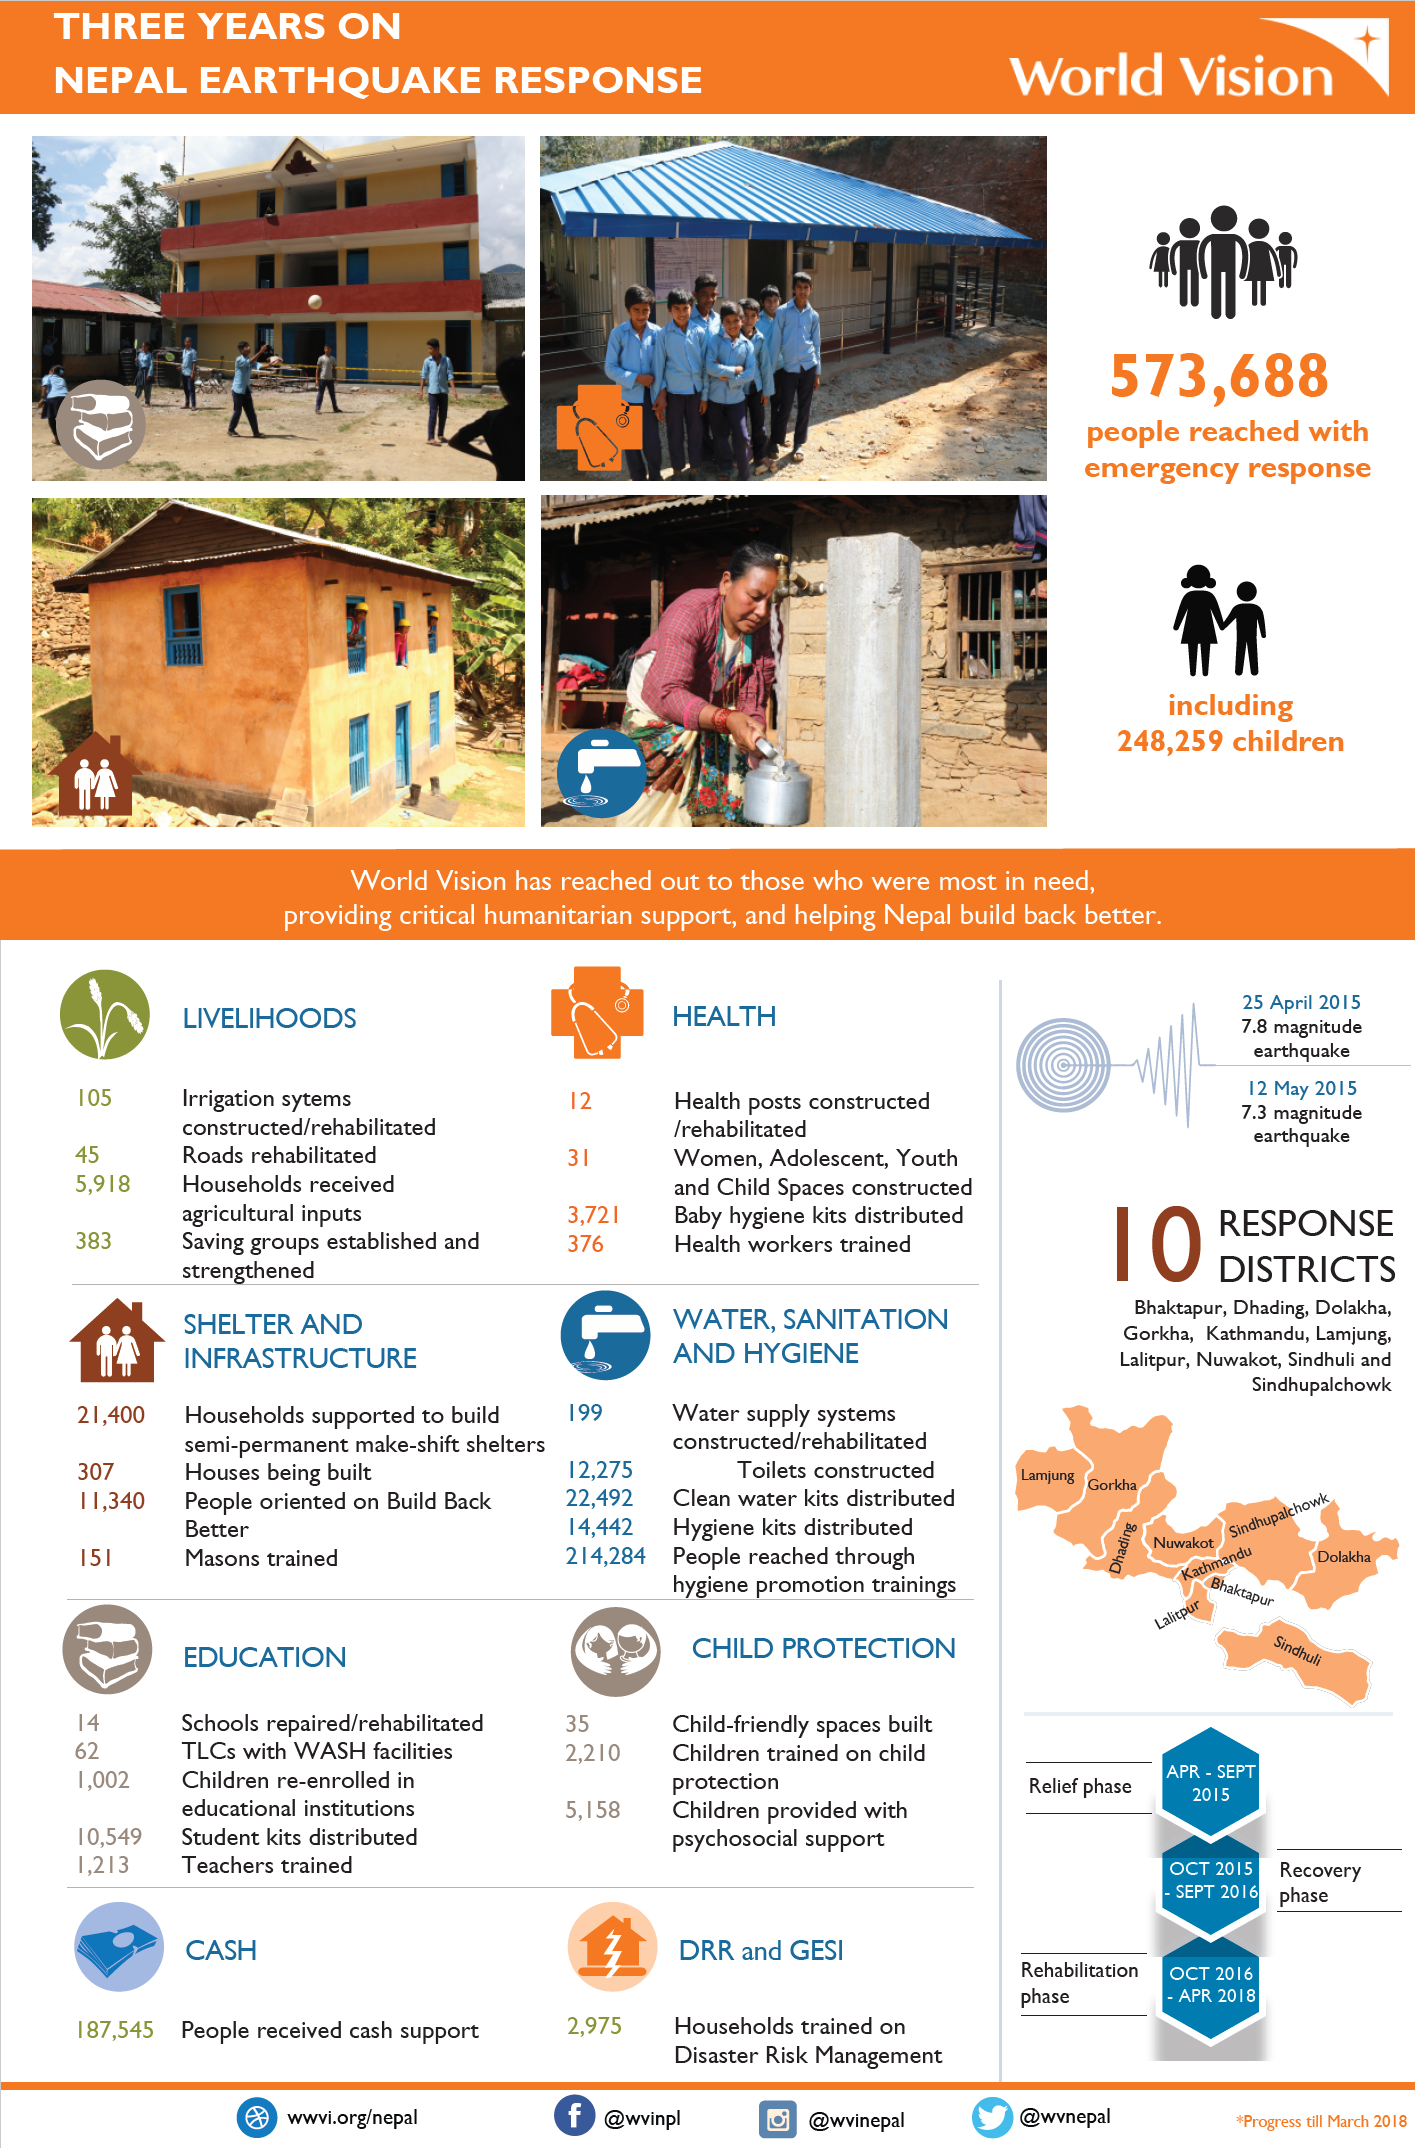 Nepal Earthquake - three years on infographic